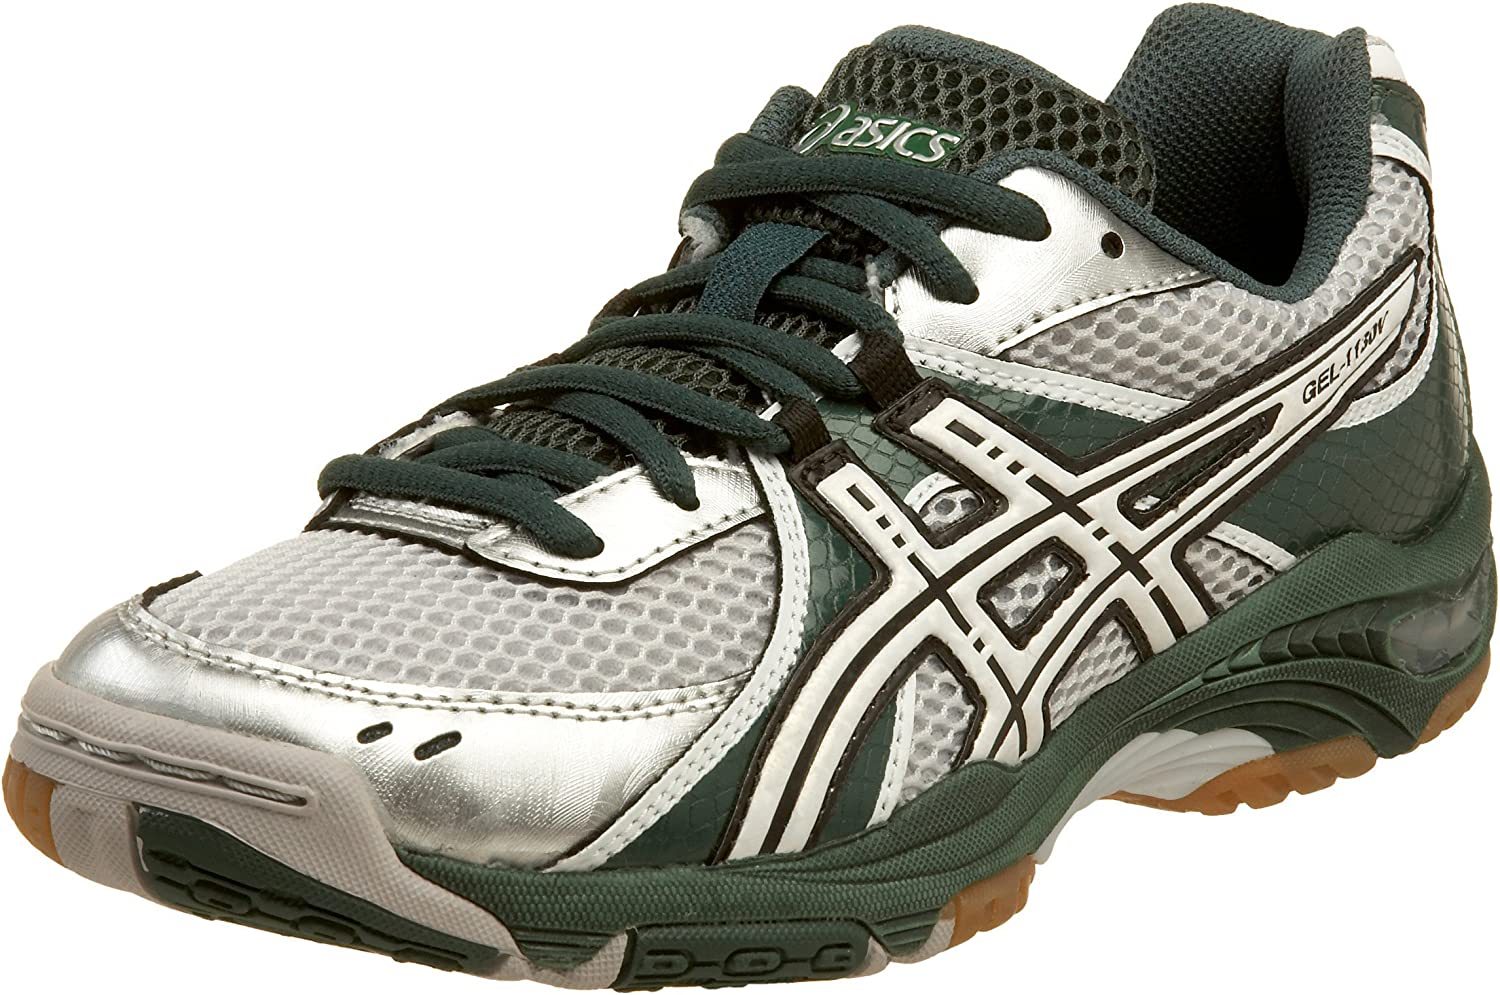 ASICS Women's GEL-1130V Volleyball shoes